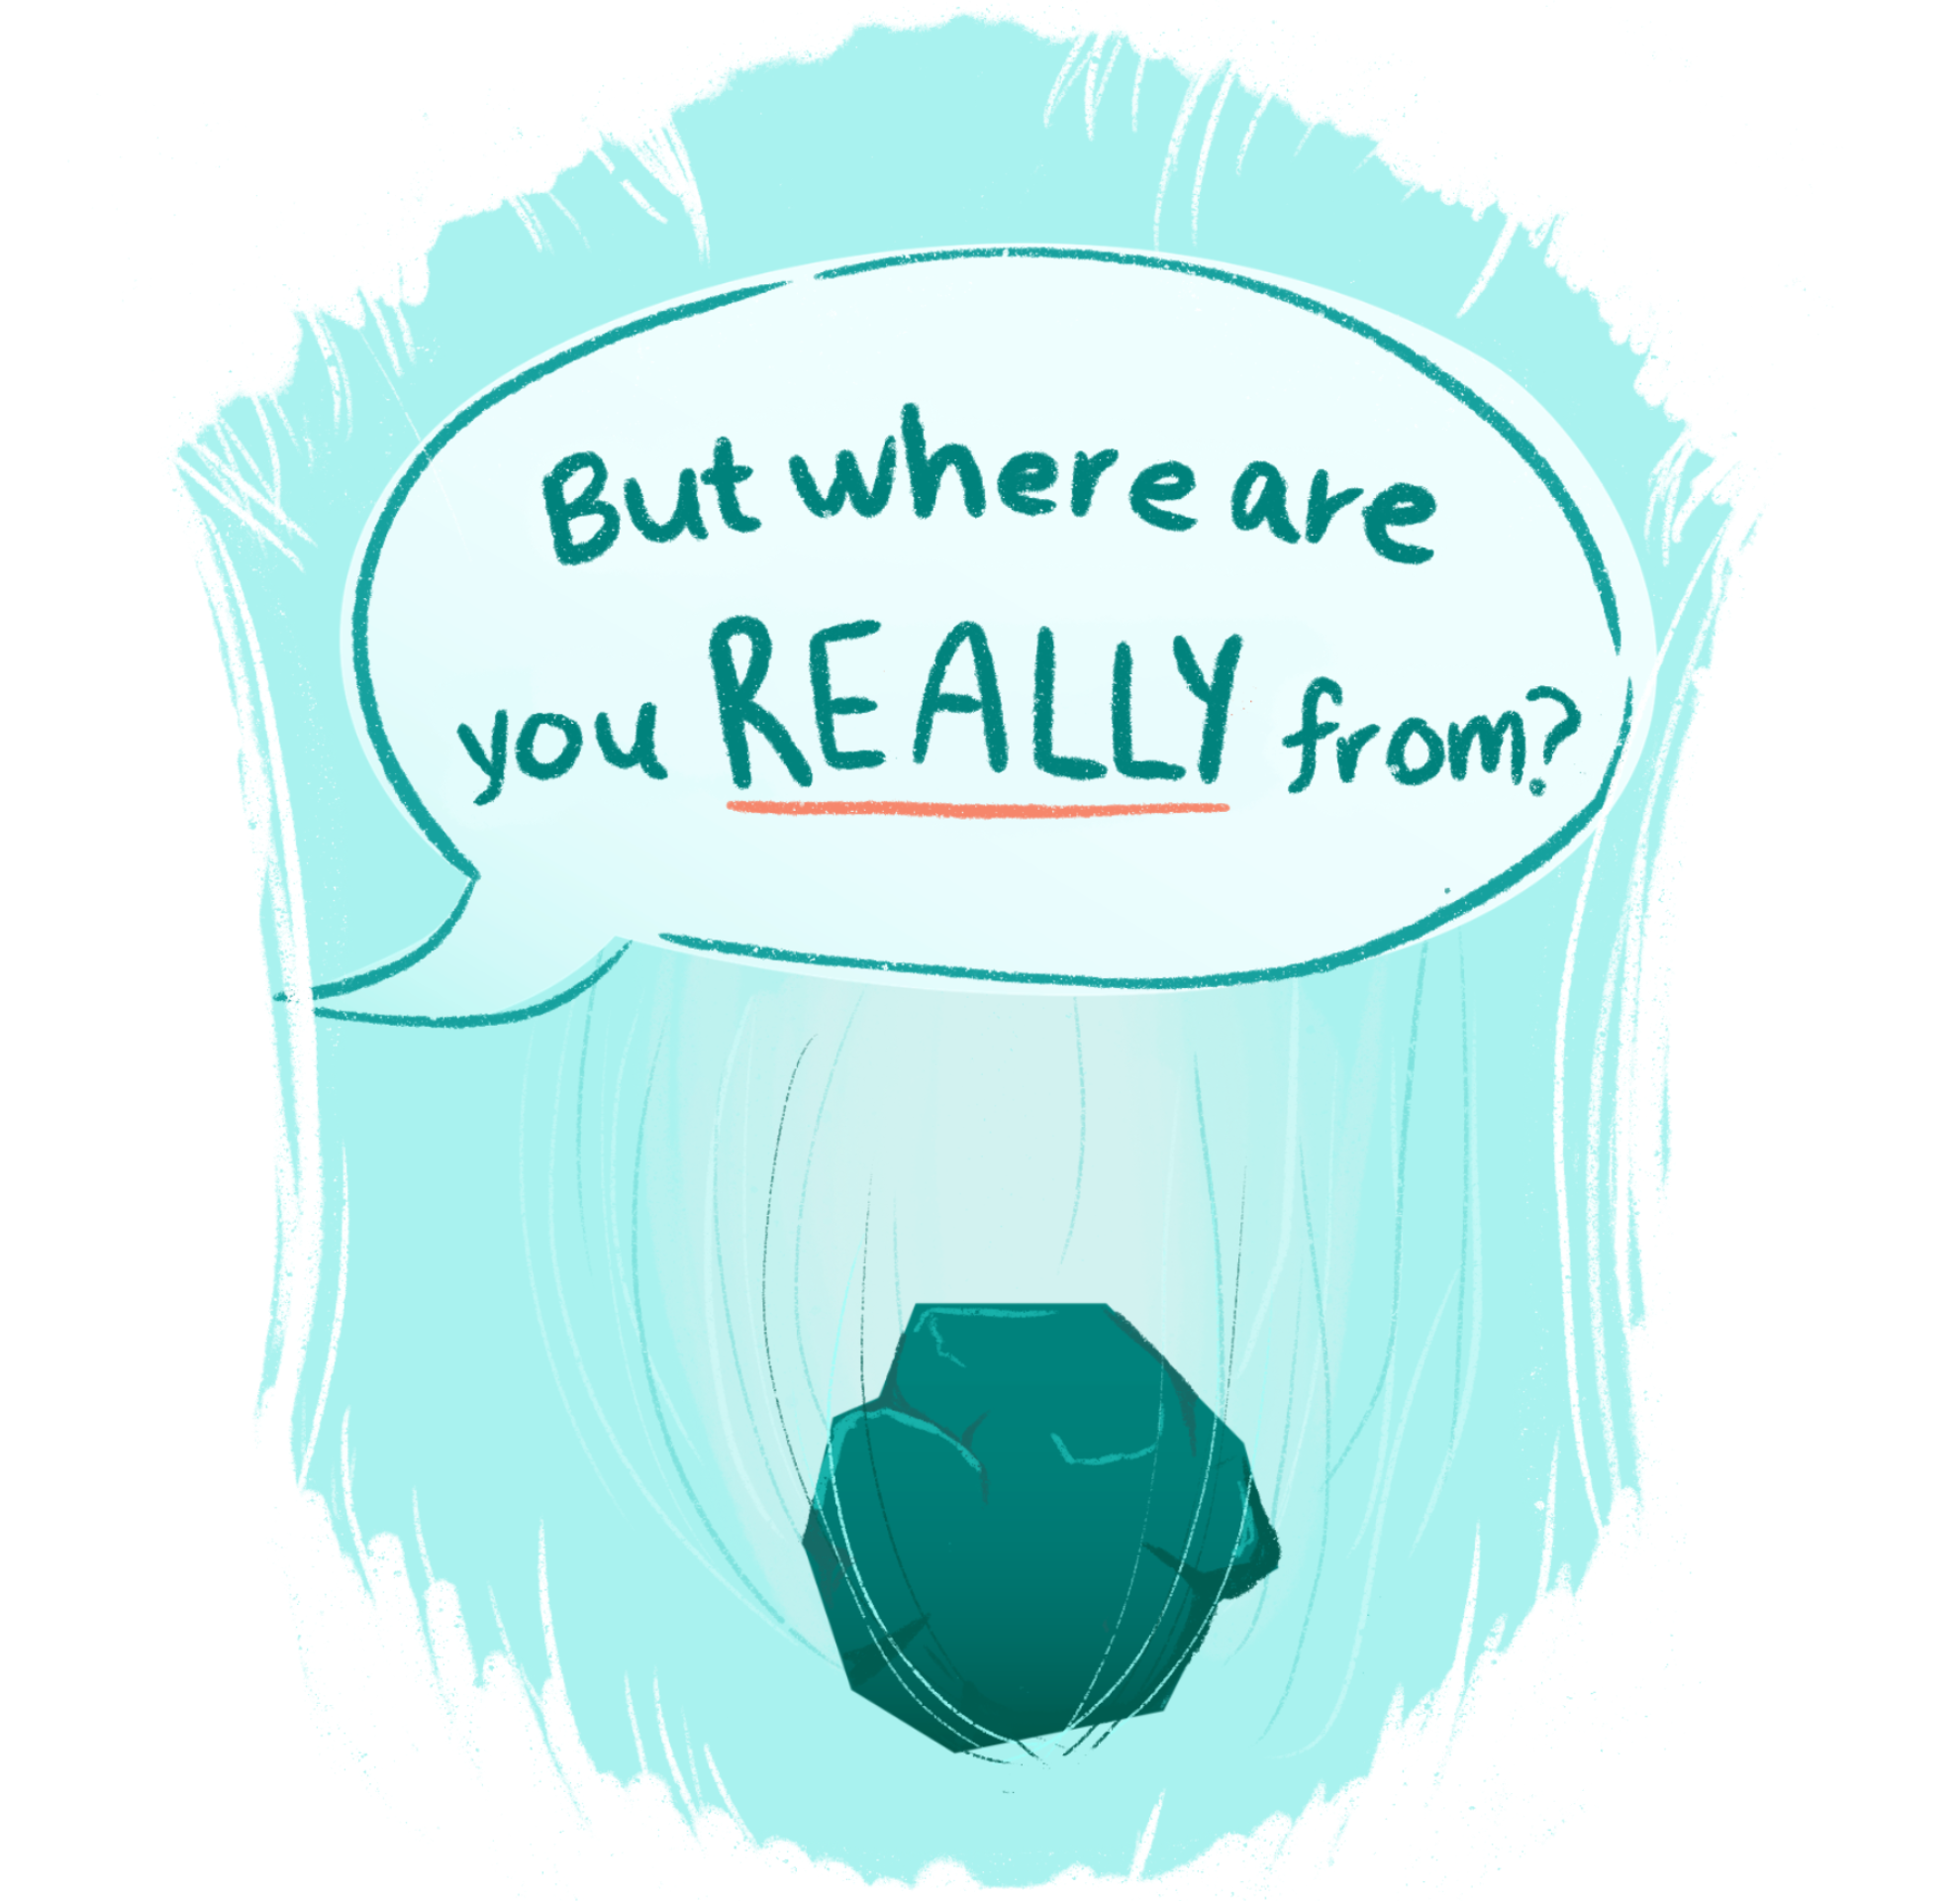 """A speech bubble that says """"But where are you REALLY from"""" with a small falling pebble behind it"""